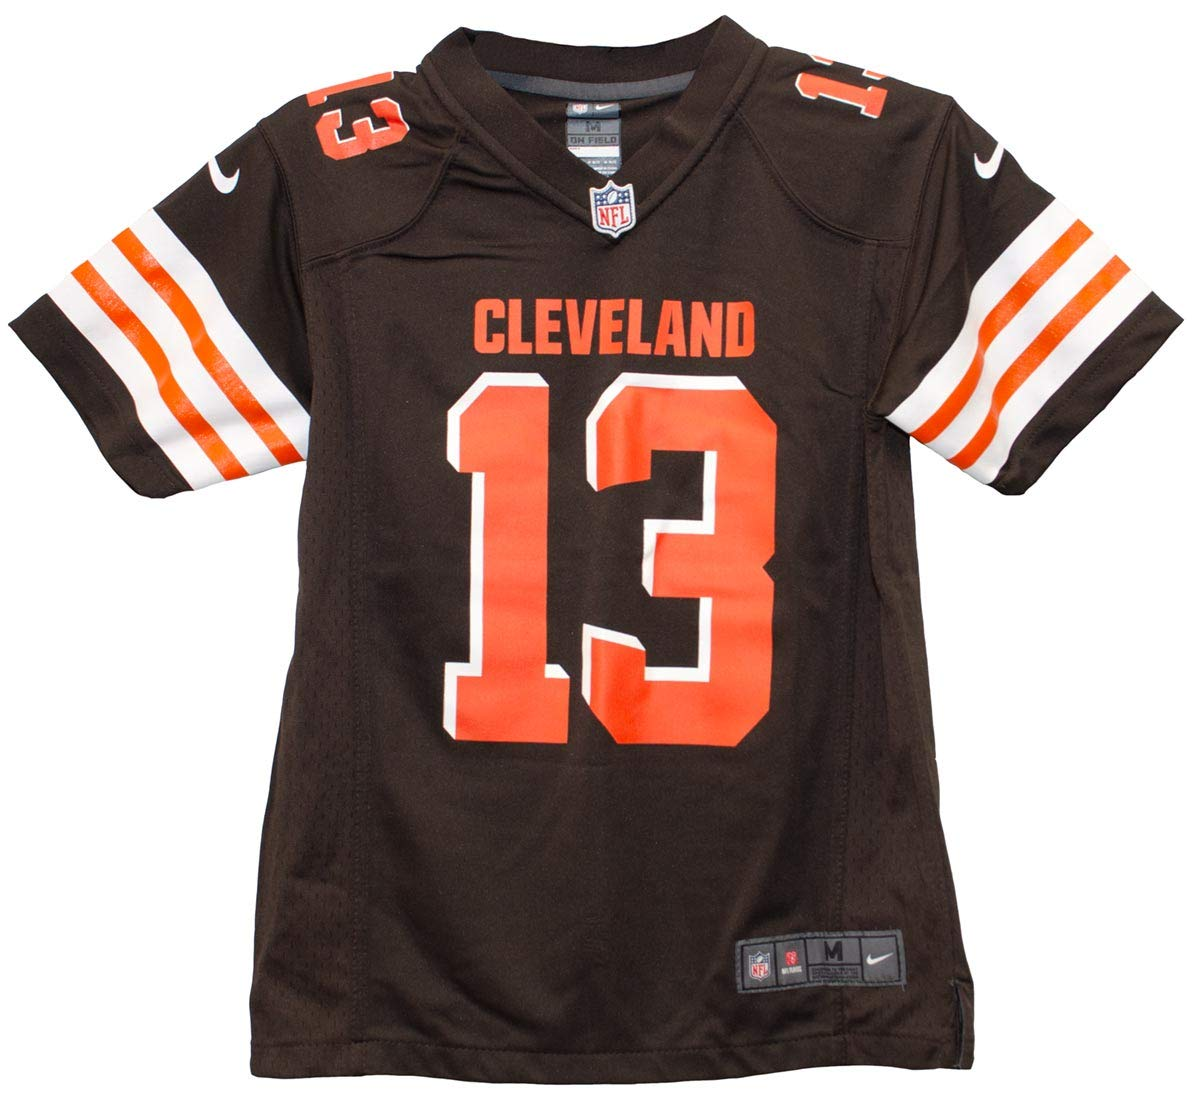 on sale 951b2 149e3 Amazon.com : Nike Odell Beckham Jr. Cleveland Browns Youth ...